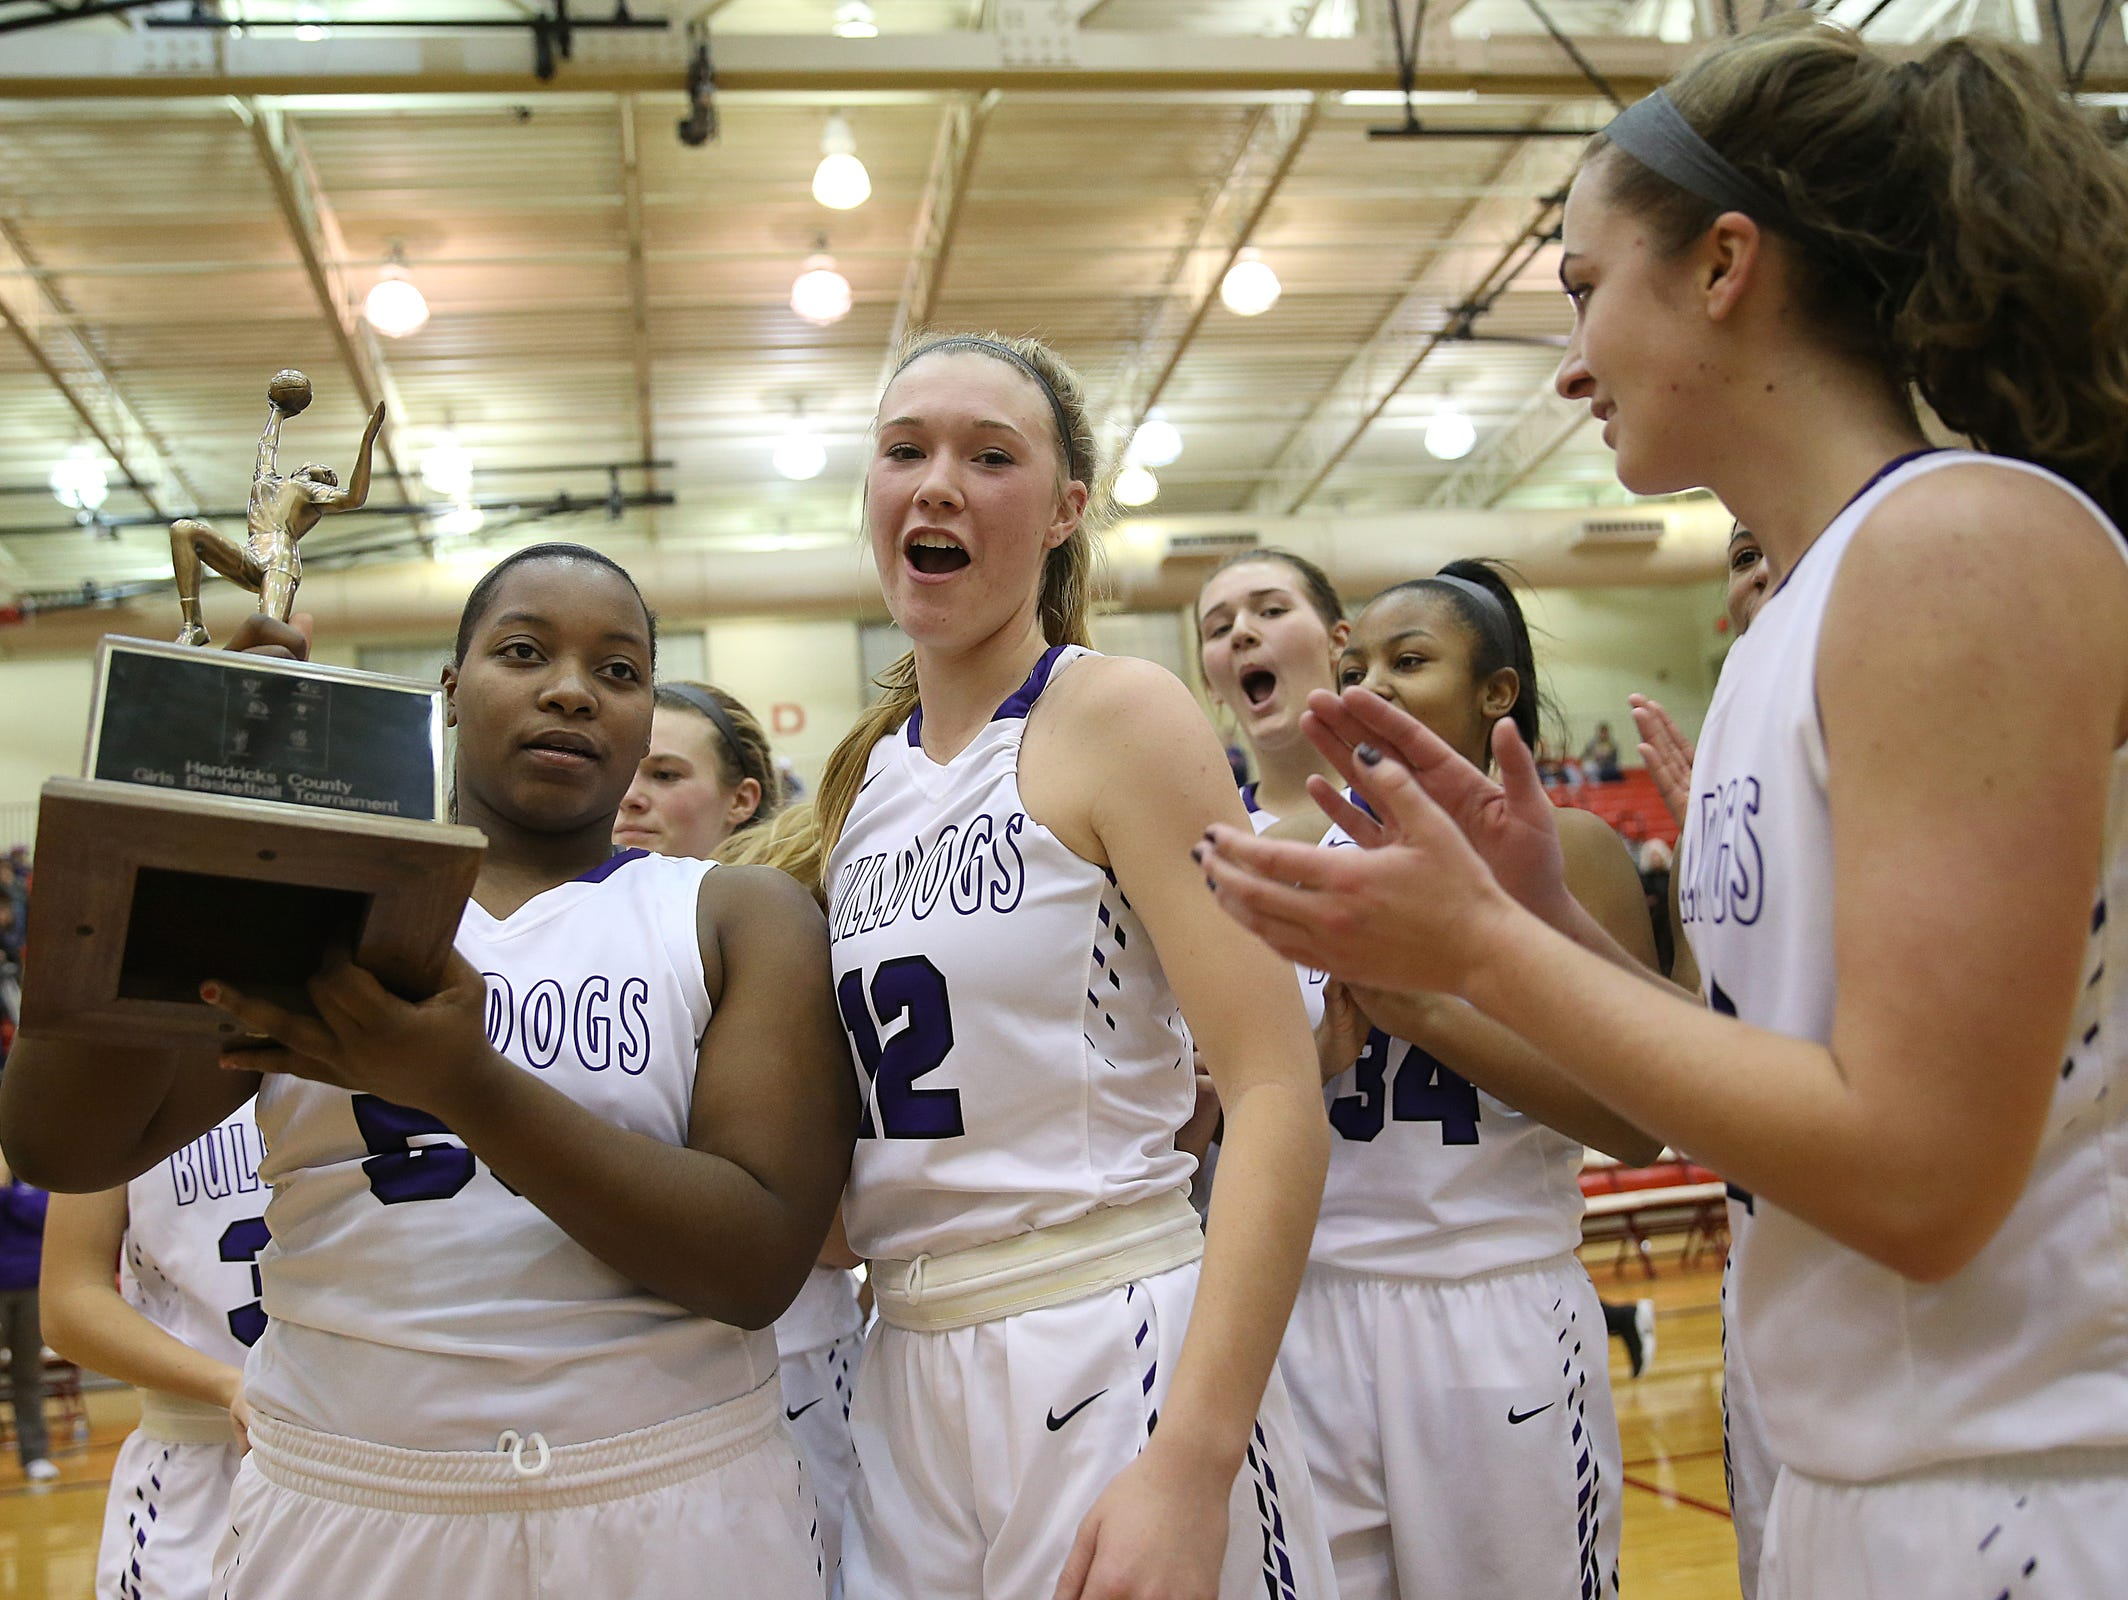 The Brownsburg Bulldogs celebrate with the trophy after defeating Danville in Hendricks County girls basketball finals at Plainfield High School, Plainfield, Ind., Saturday, Jan. 7, 2016. Brownsburg won, 46-40.